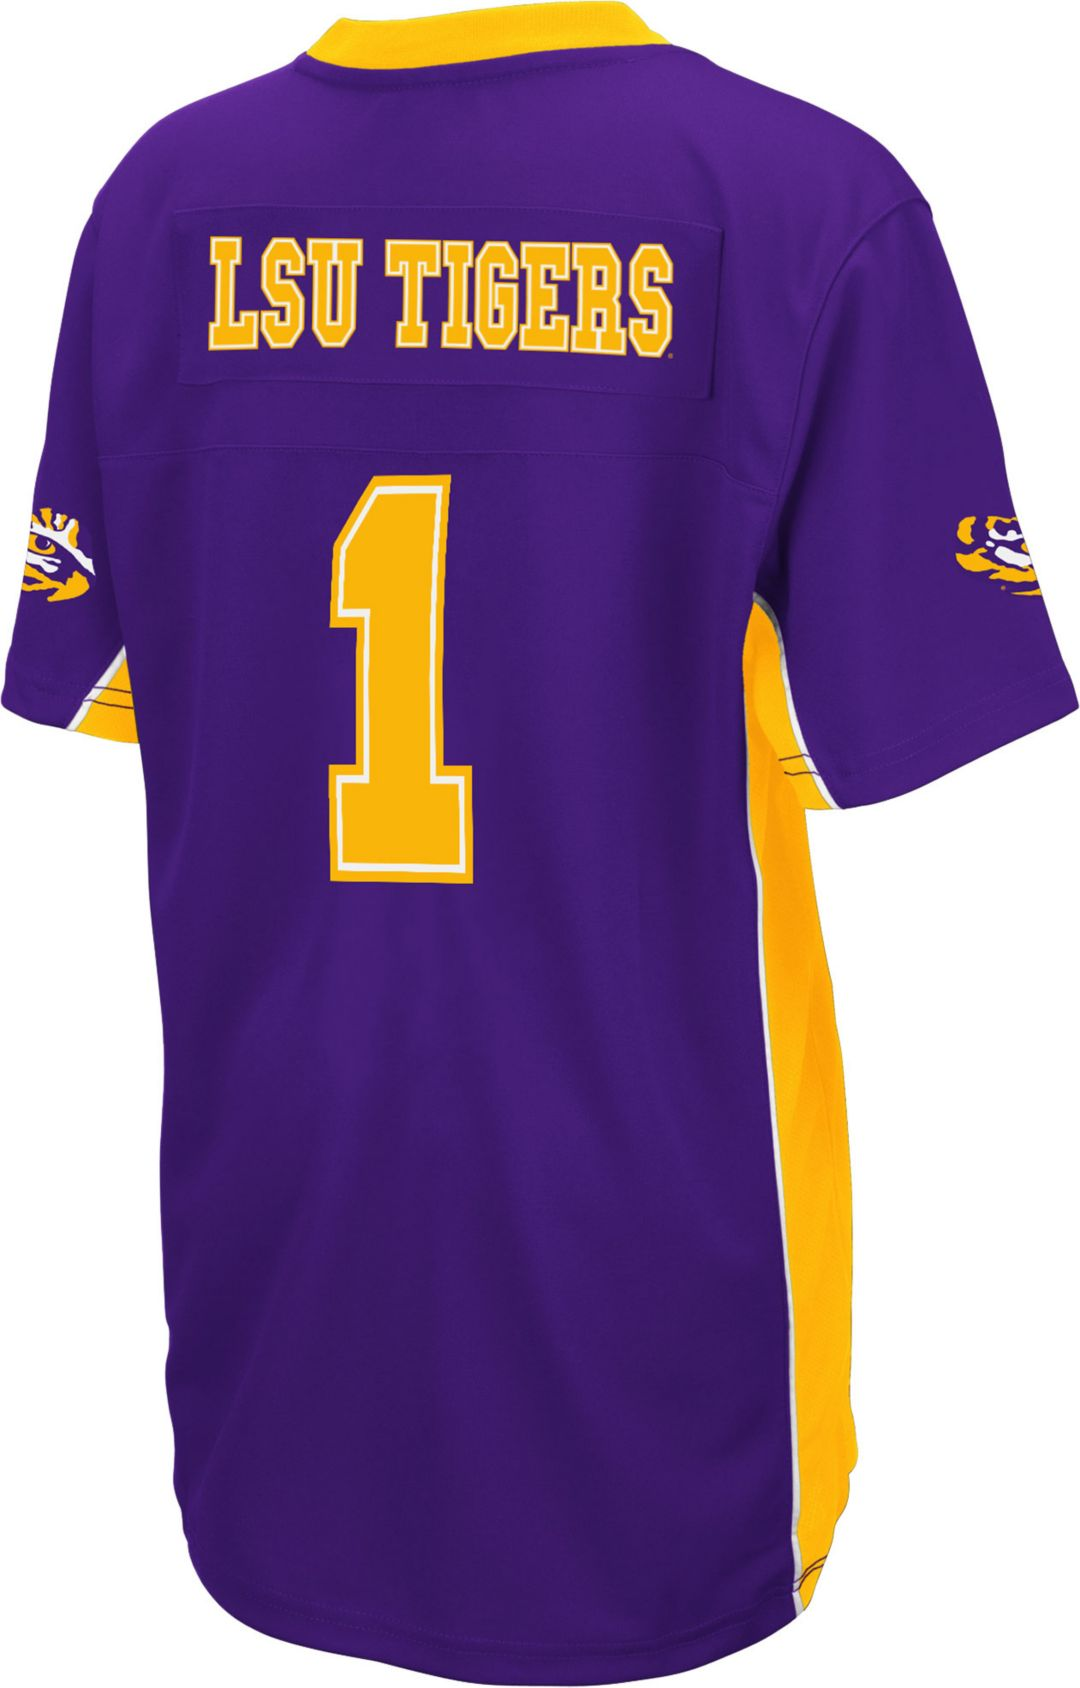 on sale 23d61 d1e65 Colosseum Youth LSU Tigers Purple Max Power Football Jersey